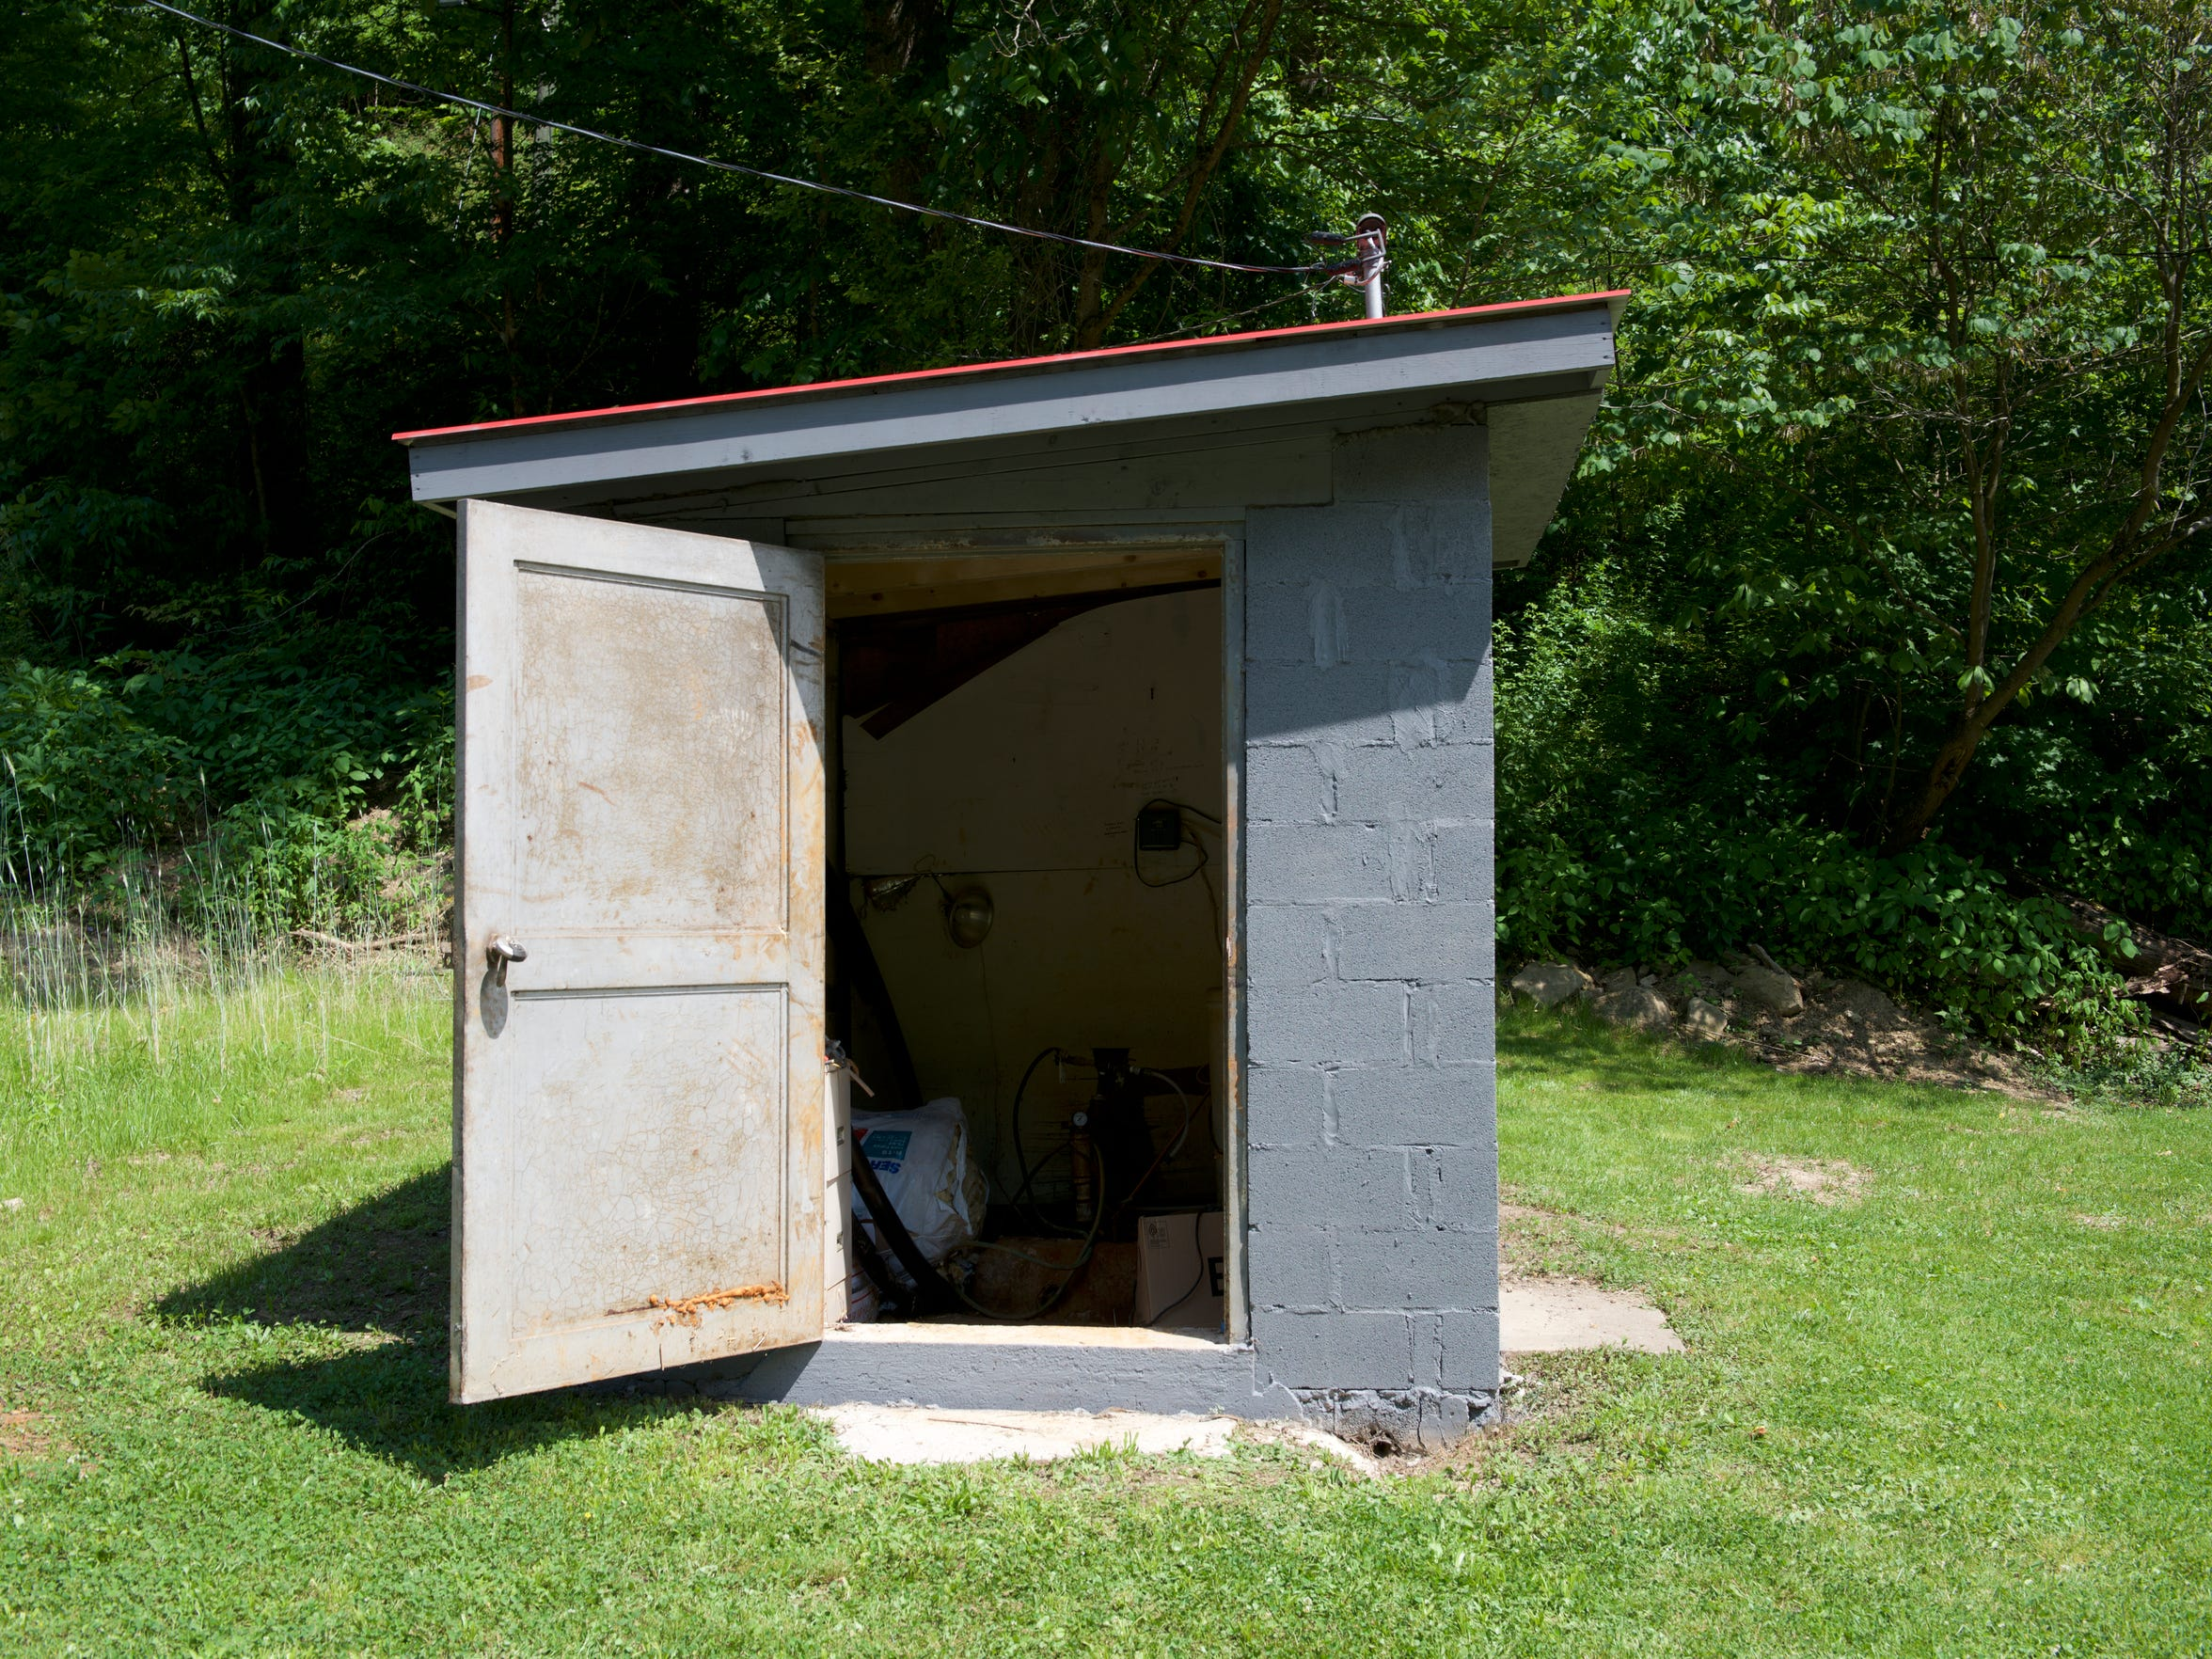 A small shed houses components of the water system